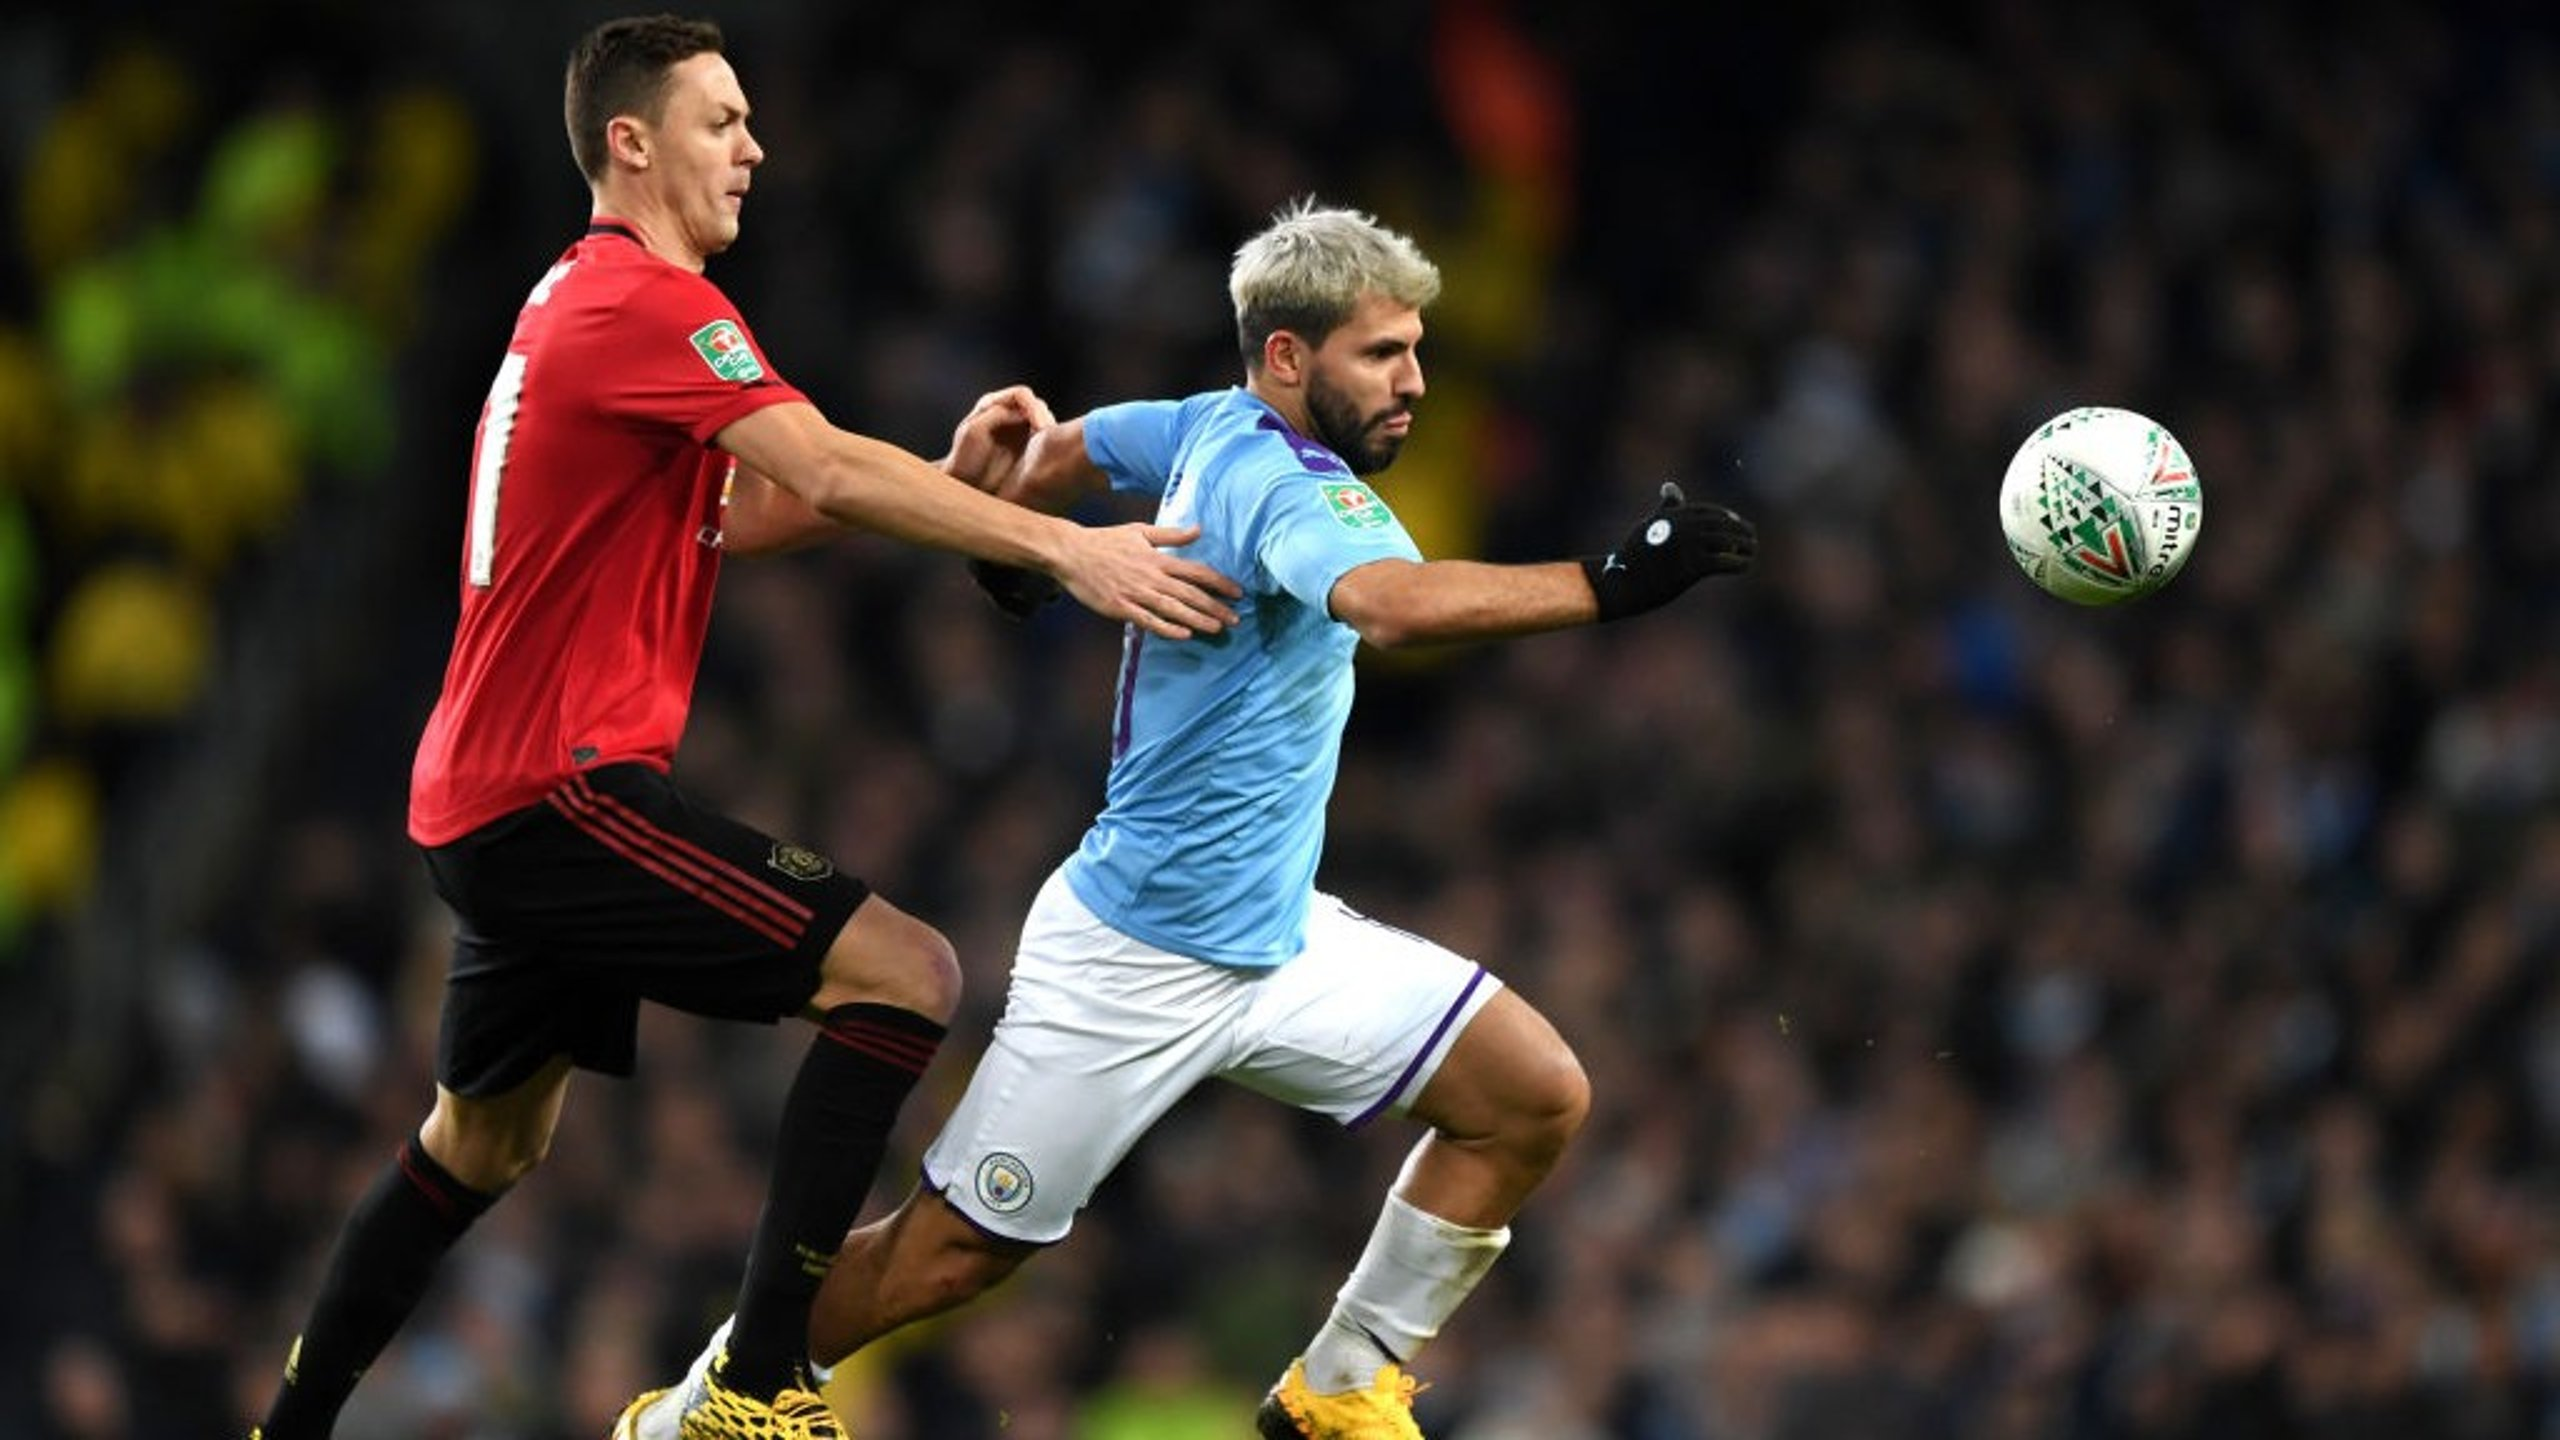 TOUCH TIGHT: Aguero looks to get away from Matic in the second half.